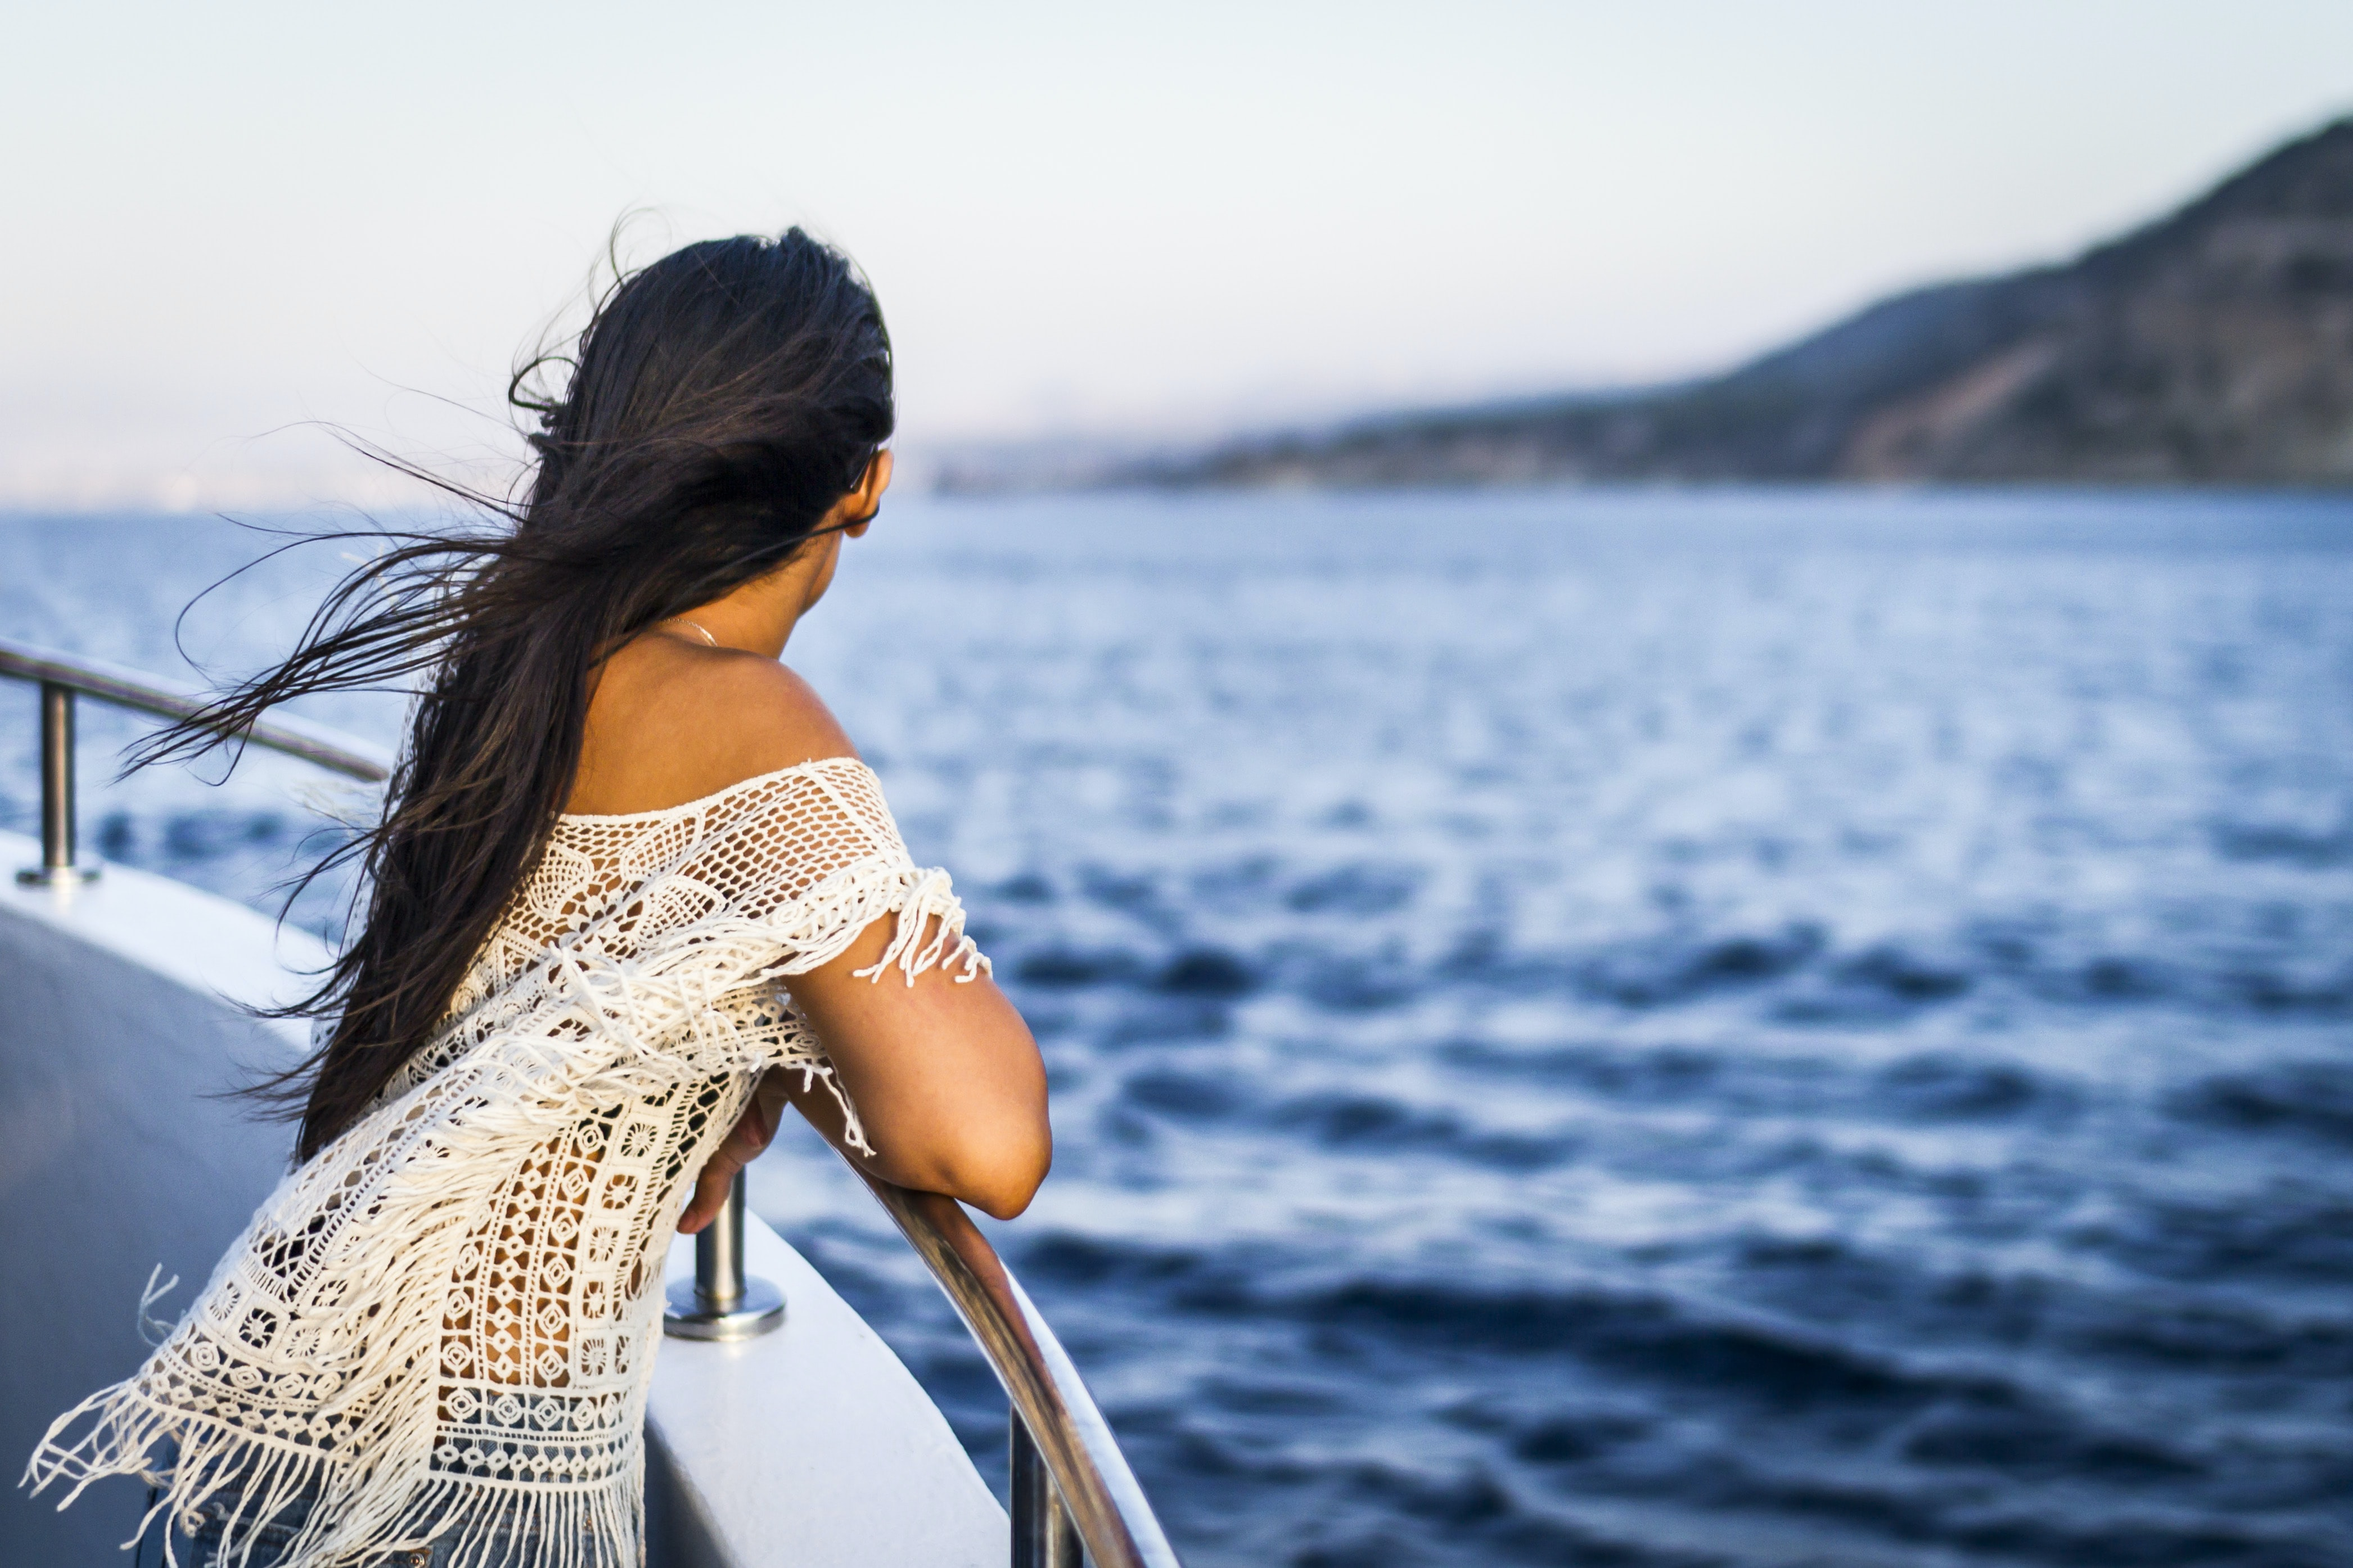 A woman staring out into the water while standing at the side of a boat.